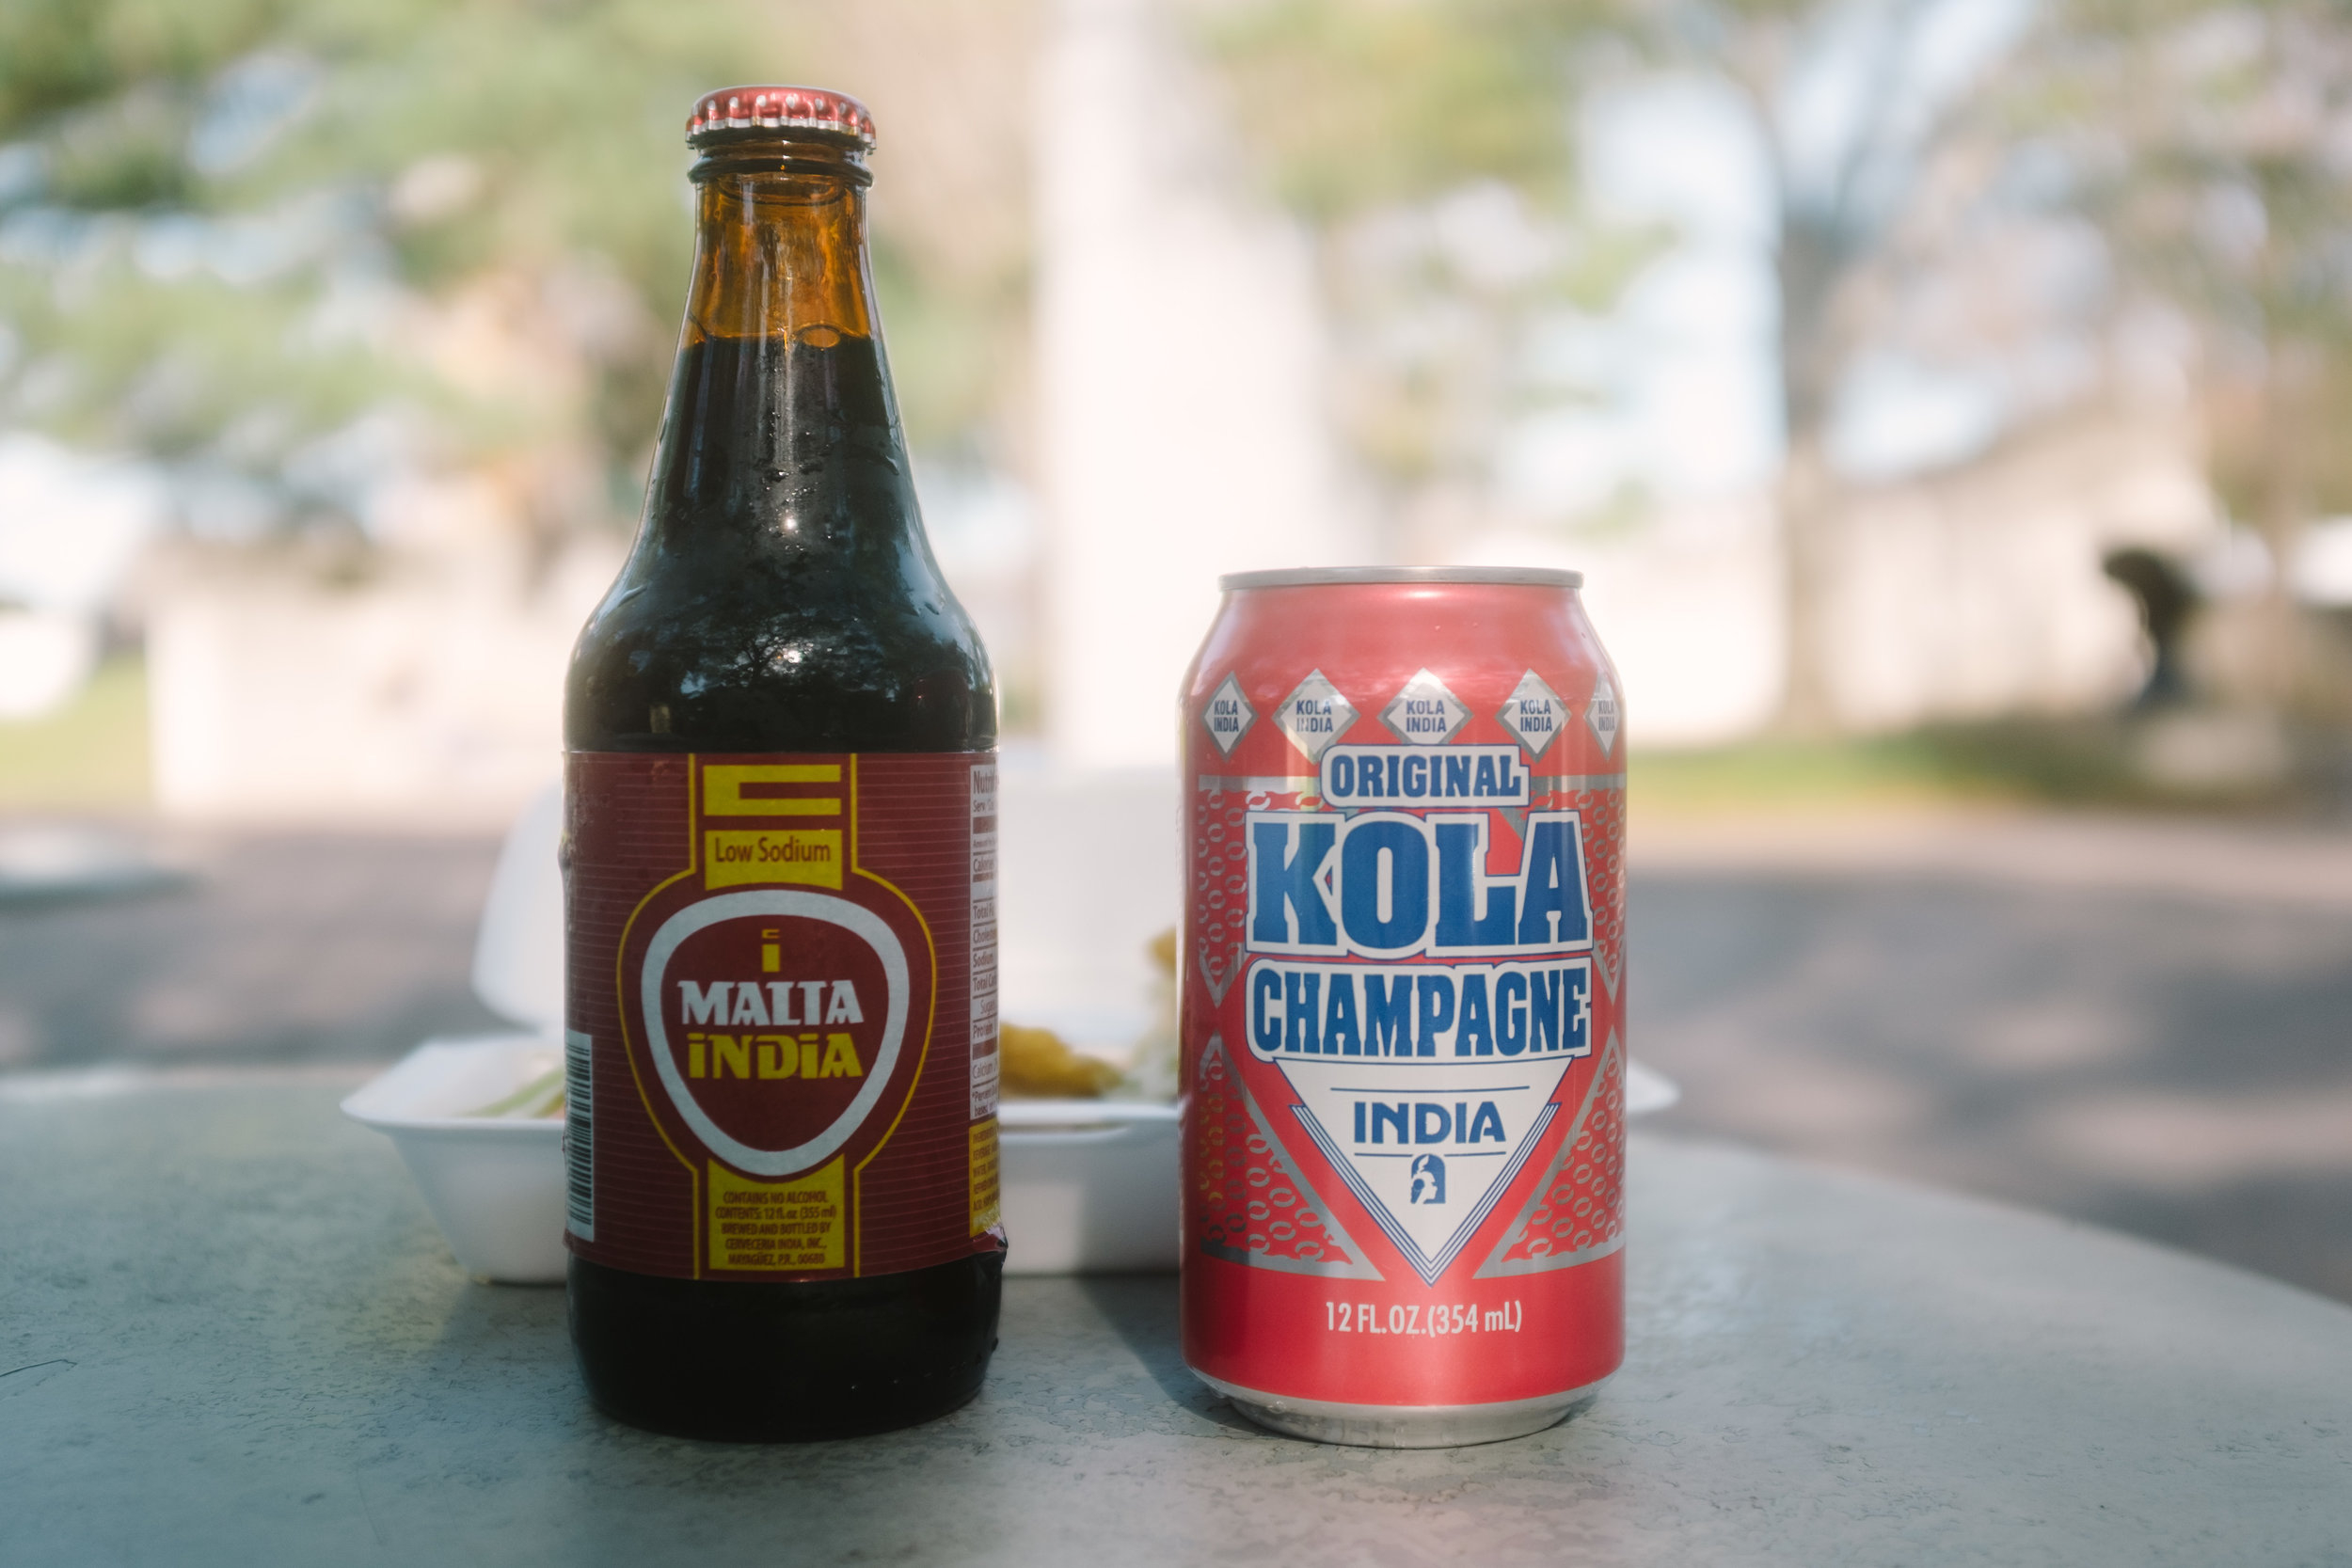 Kola Champange (somewhere between big red and creme soda, malta (Rootbeer with carrots/dates flavor)